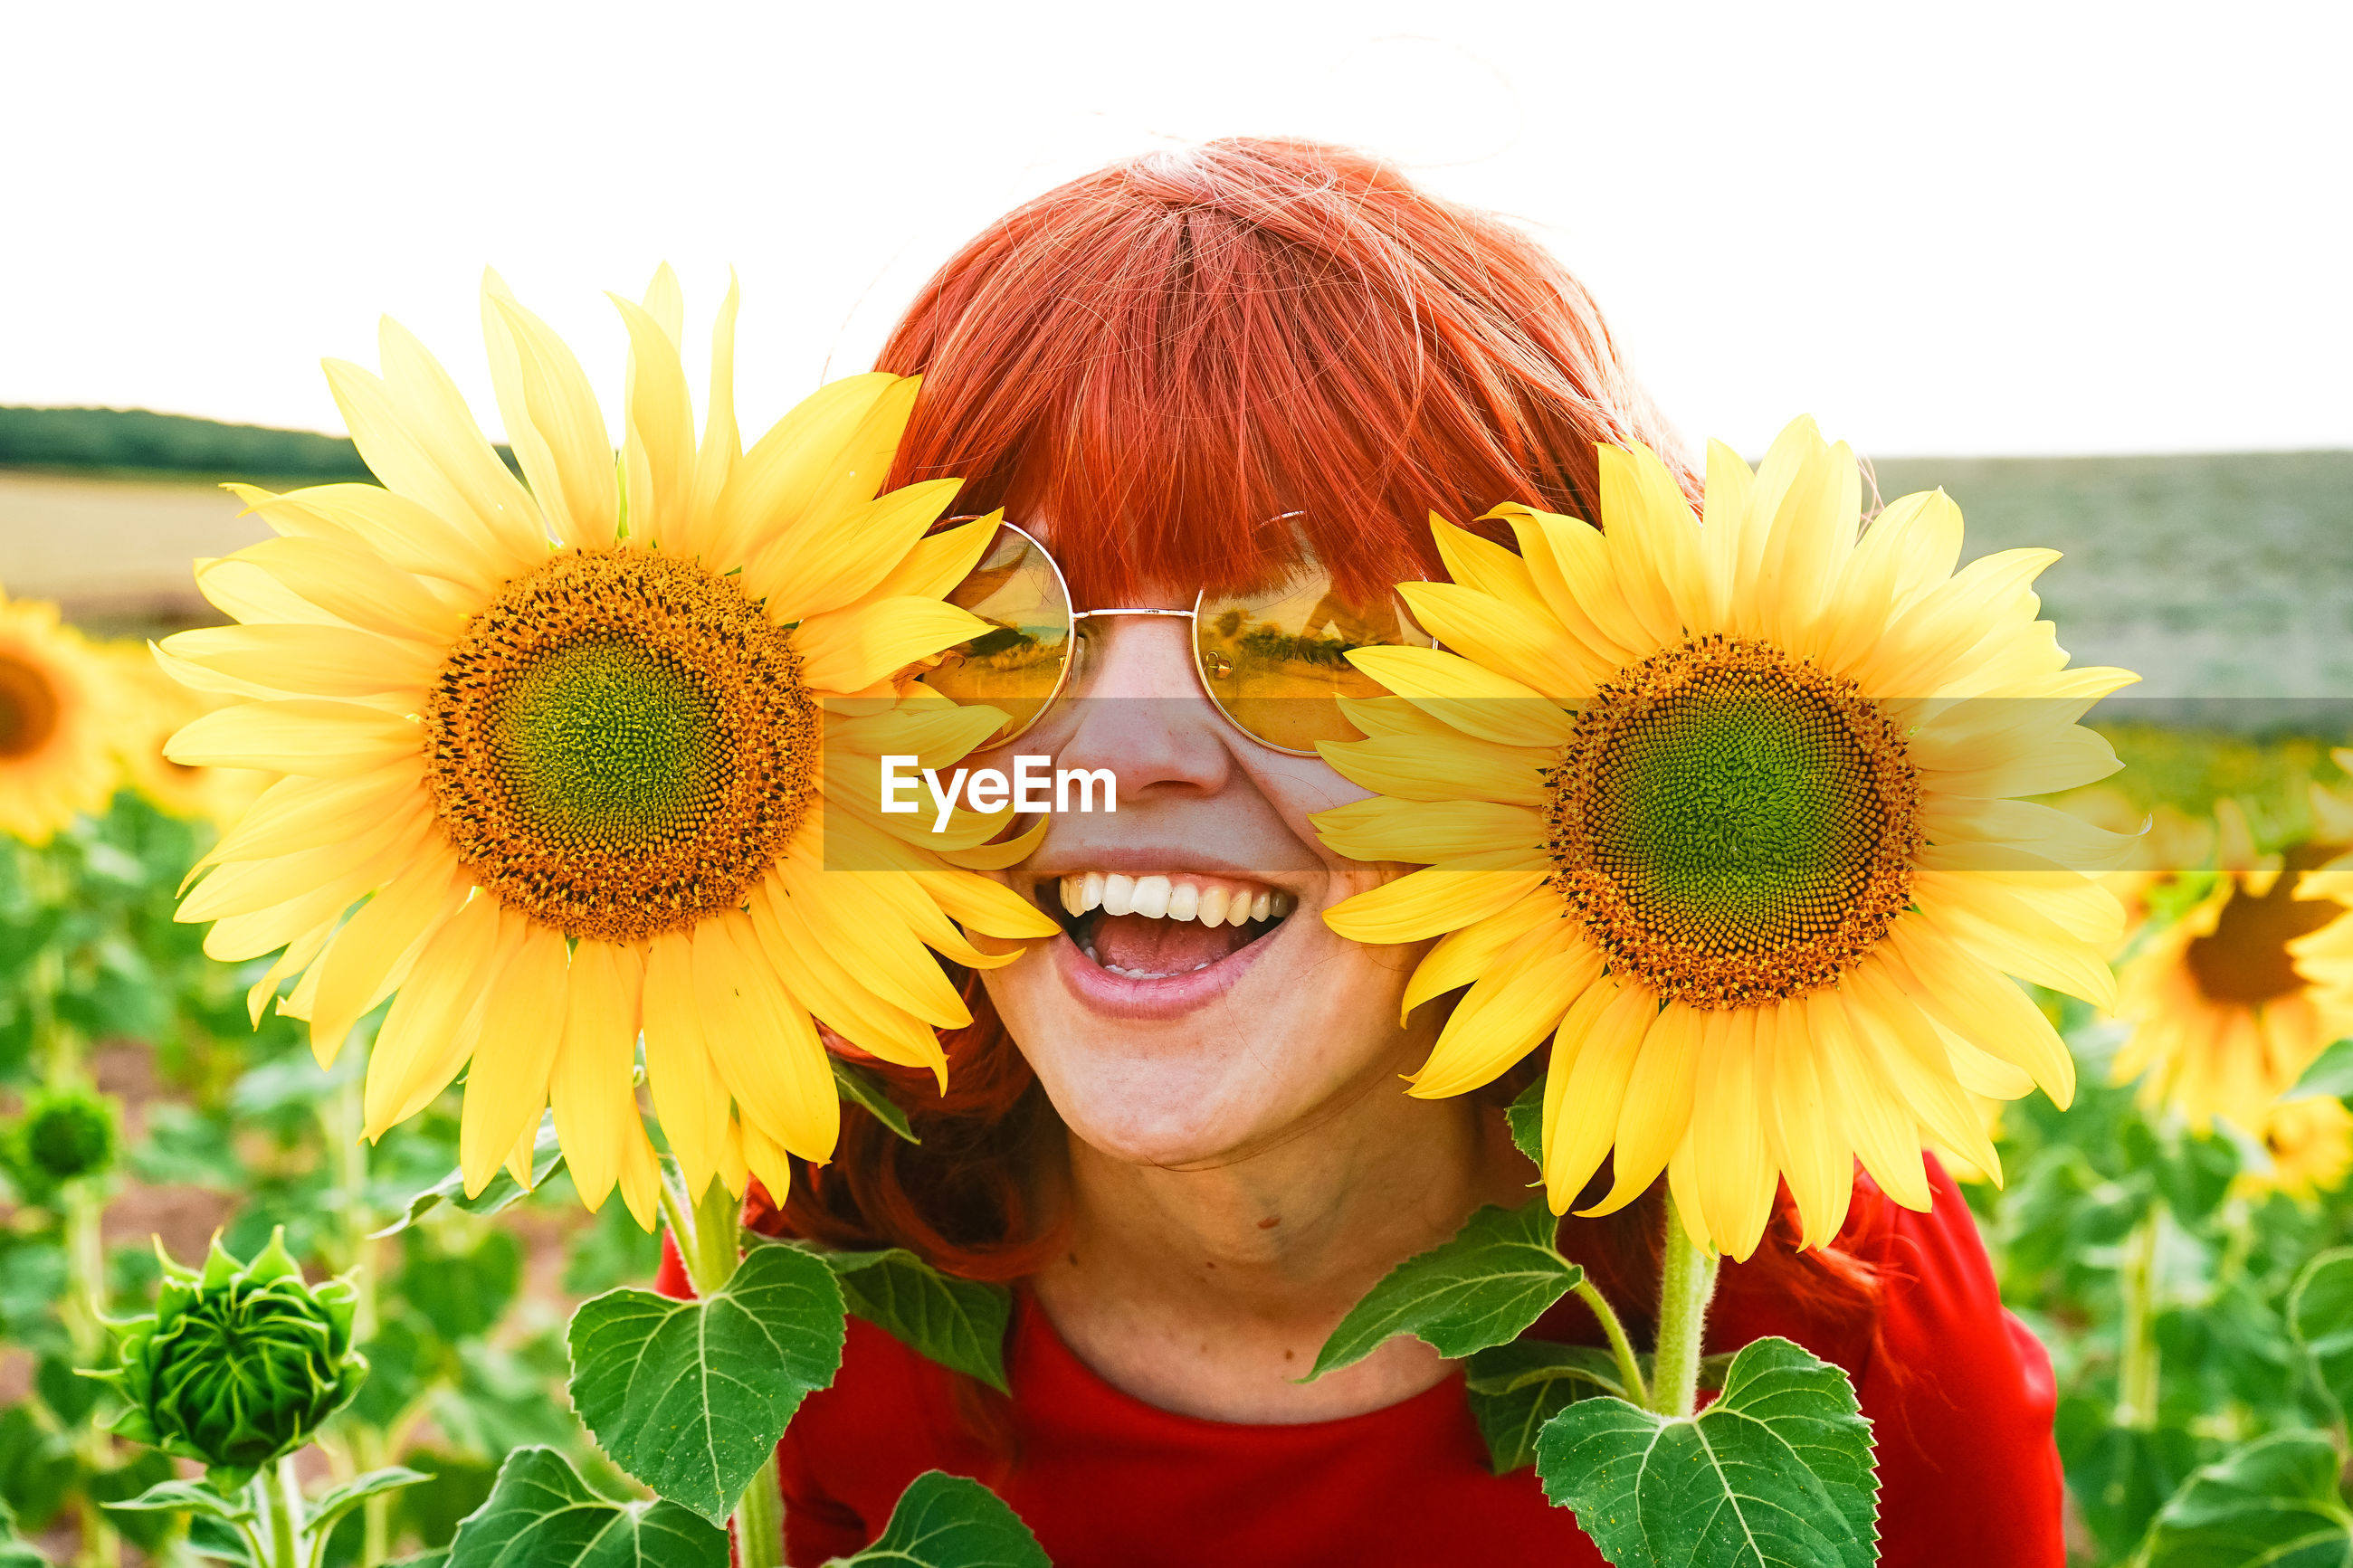 CLOSE-UP PORTRAIT OF SMILING WOMAN AGAINST YELLOW SUNFLOWER